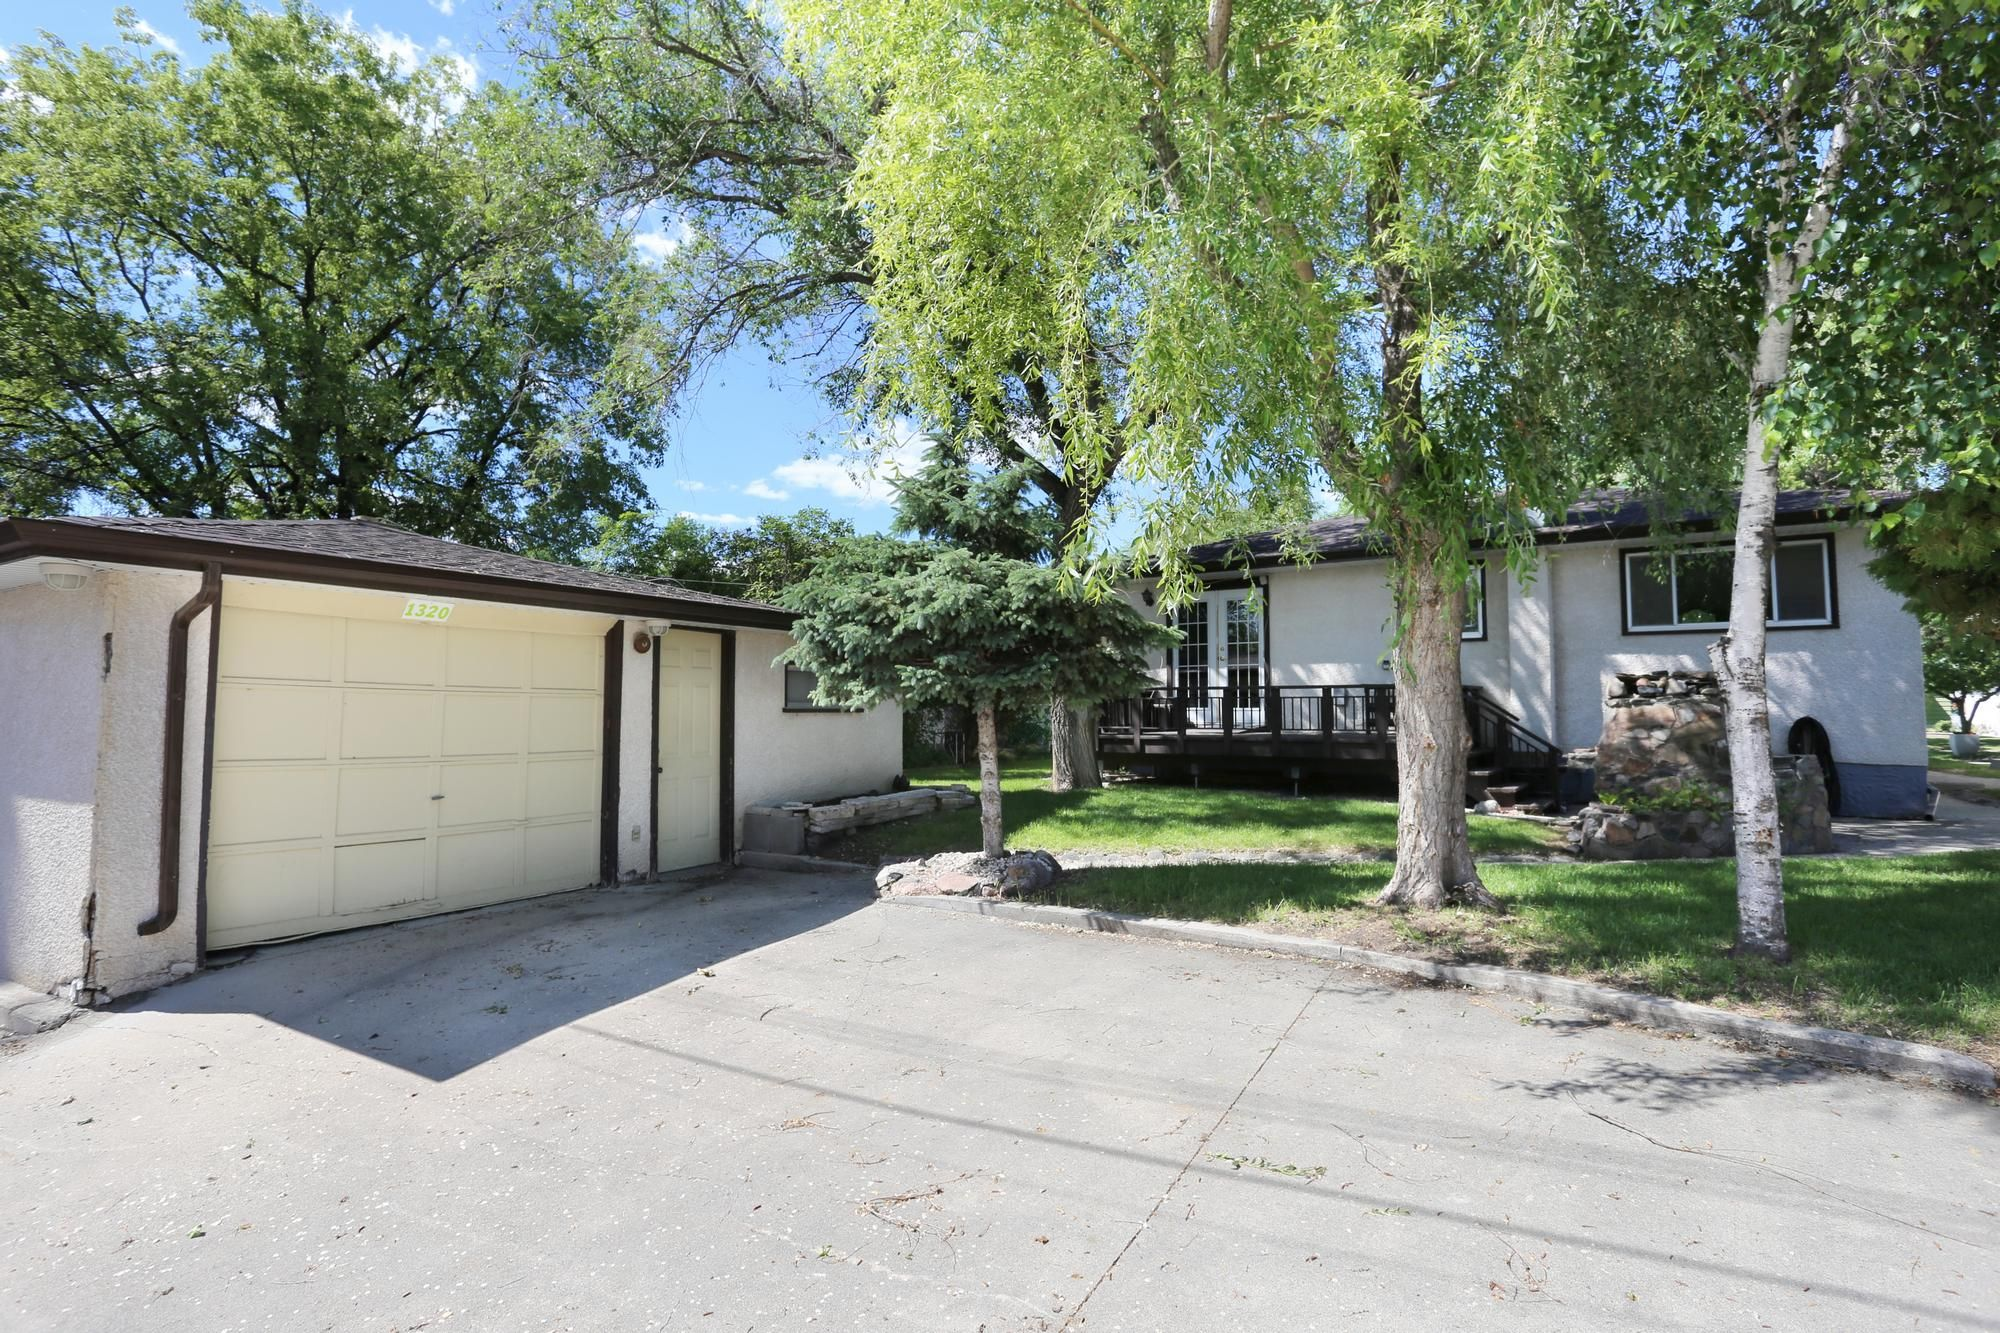 Photo 31: Photos: 1320 Valour Road in Winnipeg: West End Single Family Detached for sale (5C)  : MLS®# 1816744